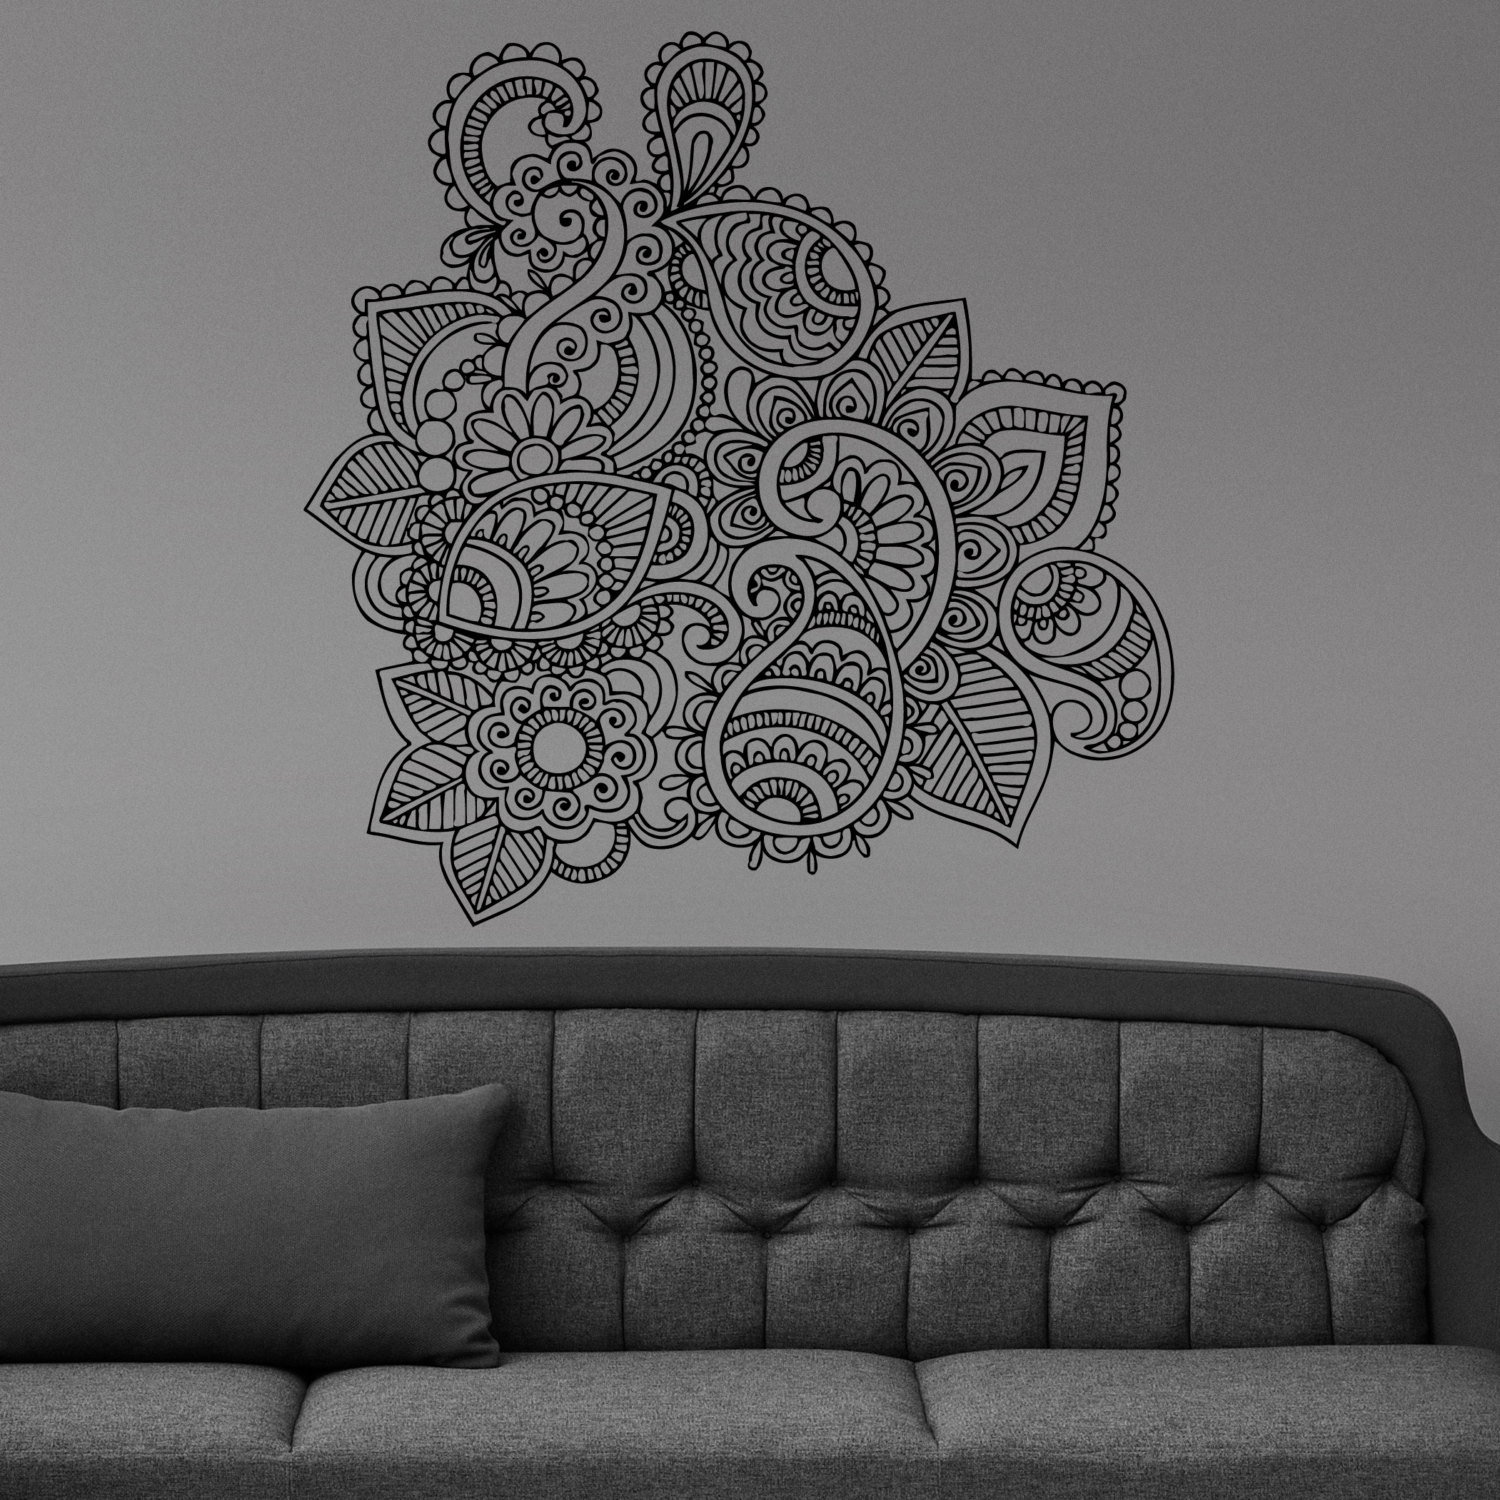 42 Henna Wall Art, Henna Design On Wall Google Search Hallway Regarding 2017 Henna Wall Art (Gallery 4 of 20)